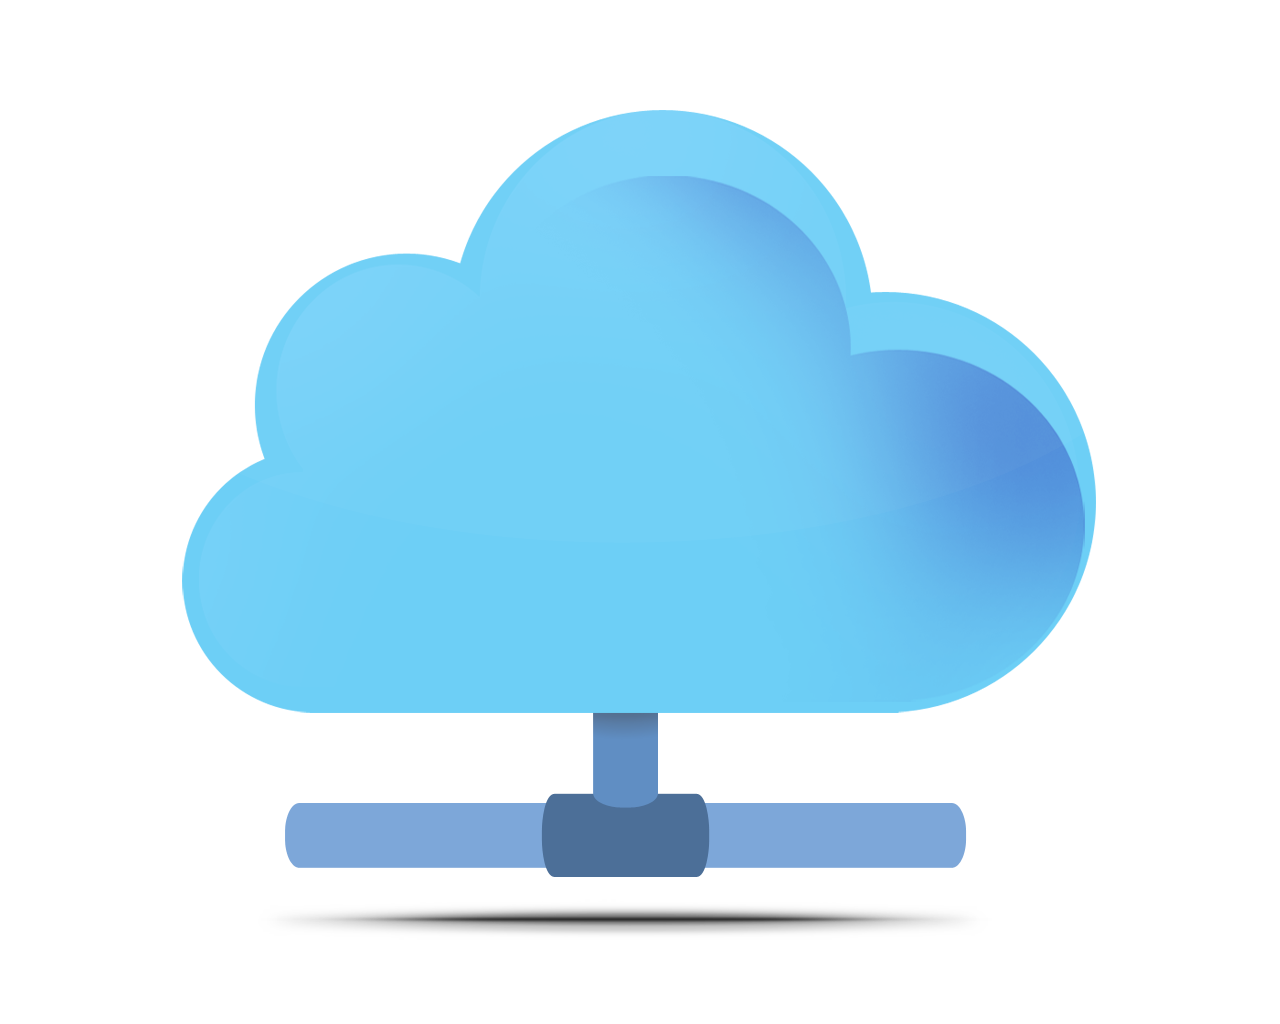 13 Cloud Hosting Icon.png Images